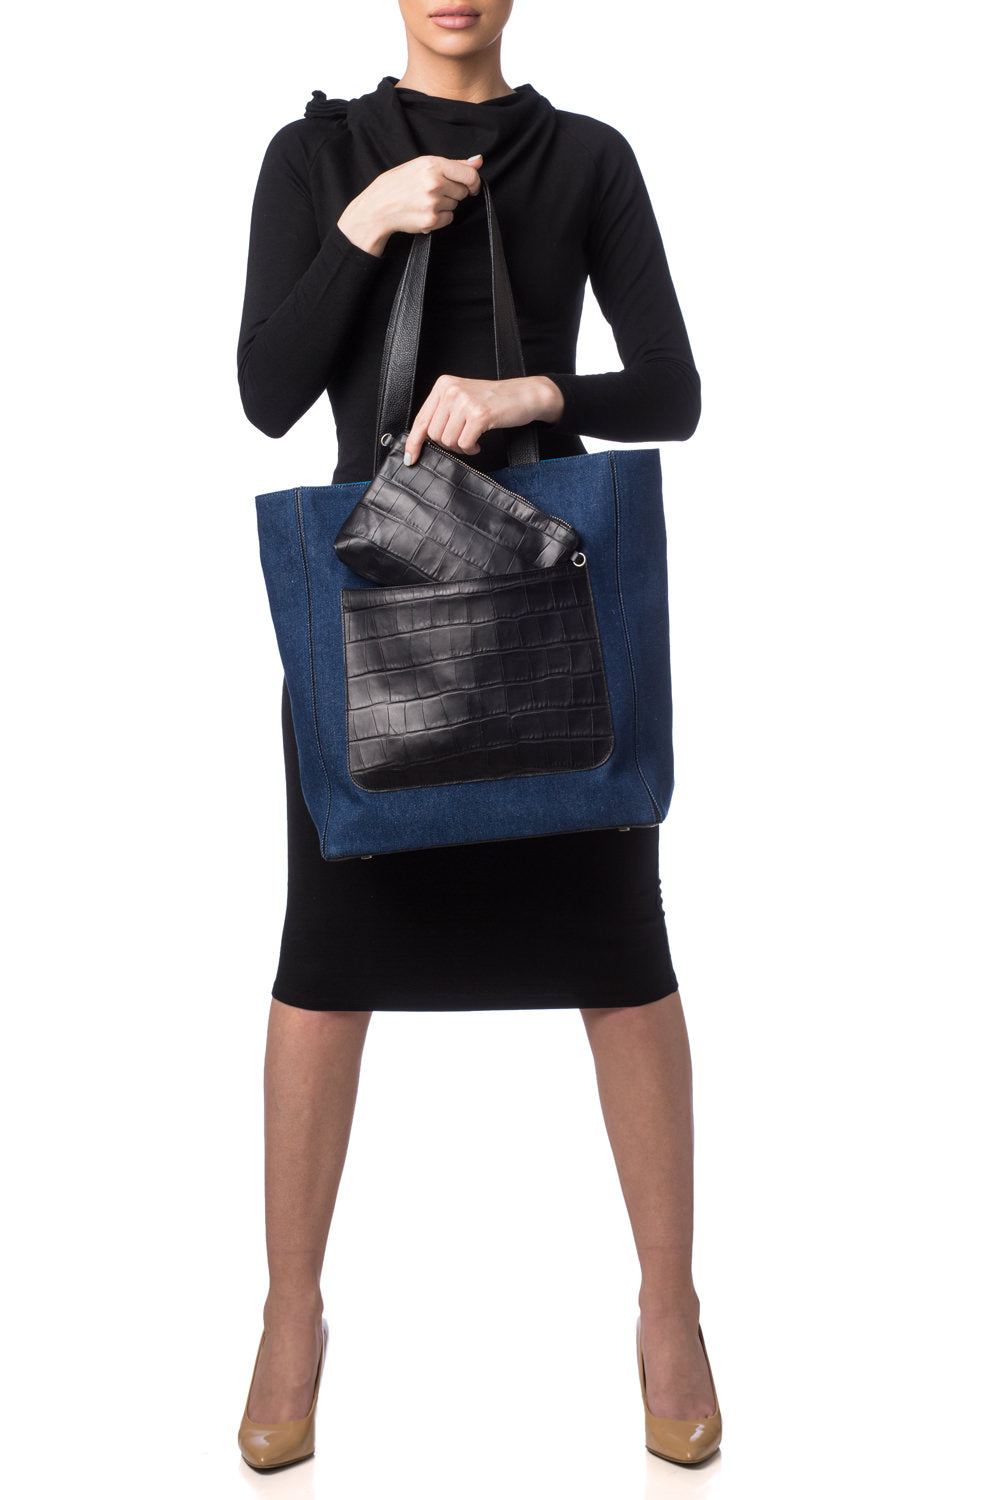 Dark Denim 'Stuart' Carryall Tote | Mel Boteri | Model View